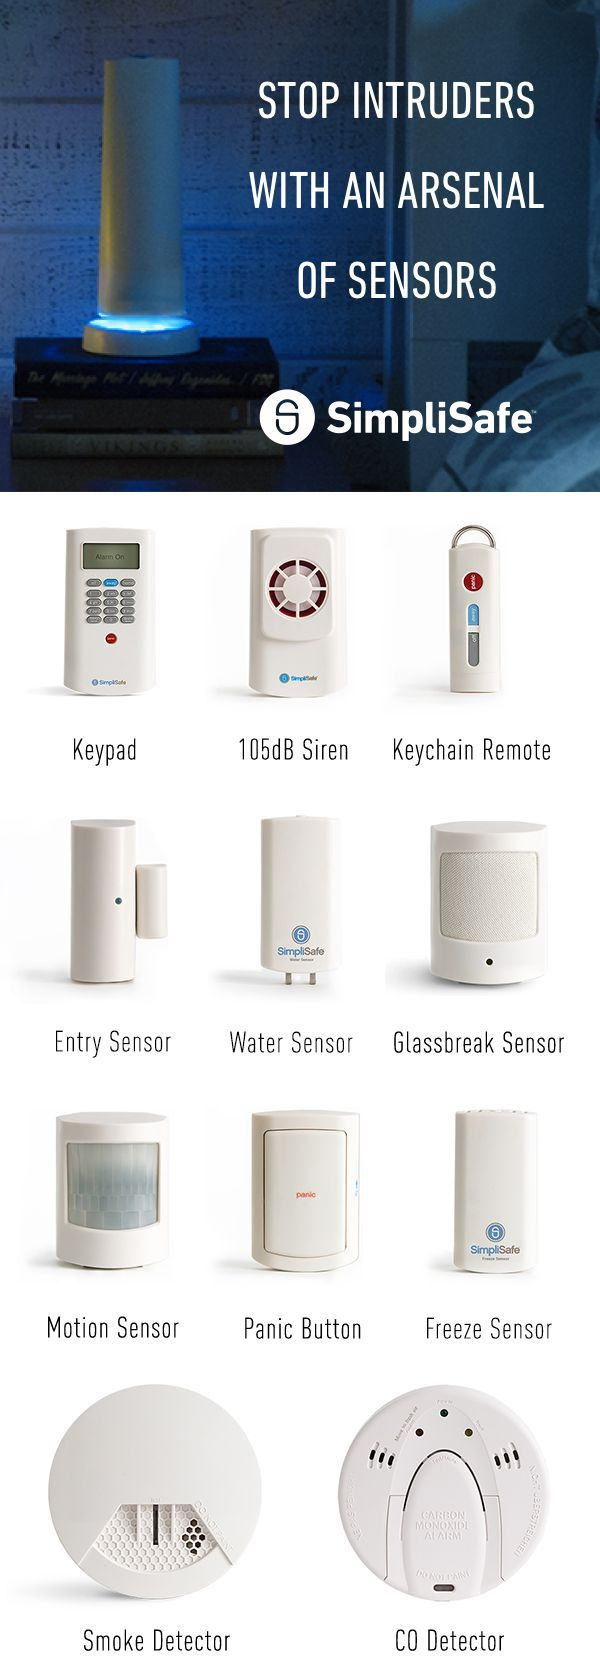 medium resolution of when you choose simplisafe you get a custom home security system shipped straight to your door within 30 minutes it s set up and your whole apartment is